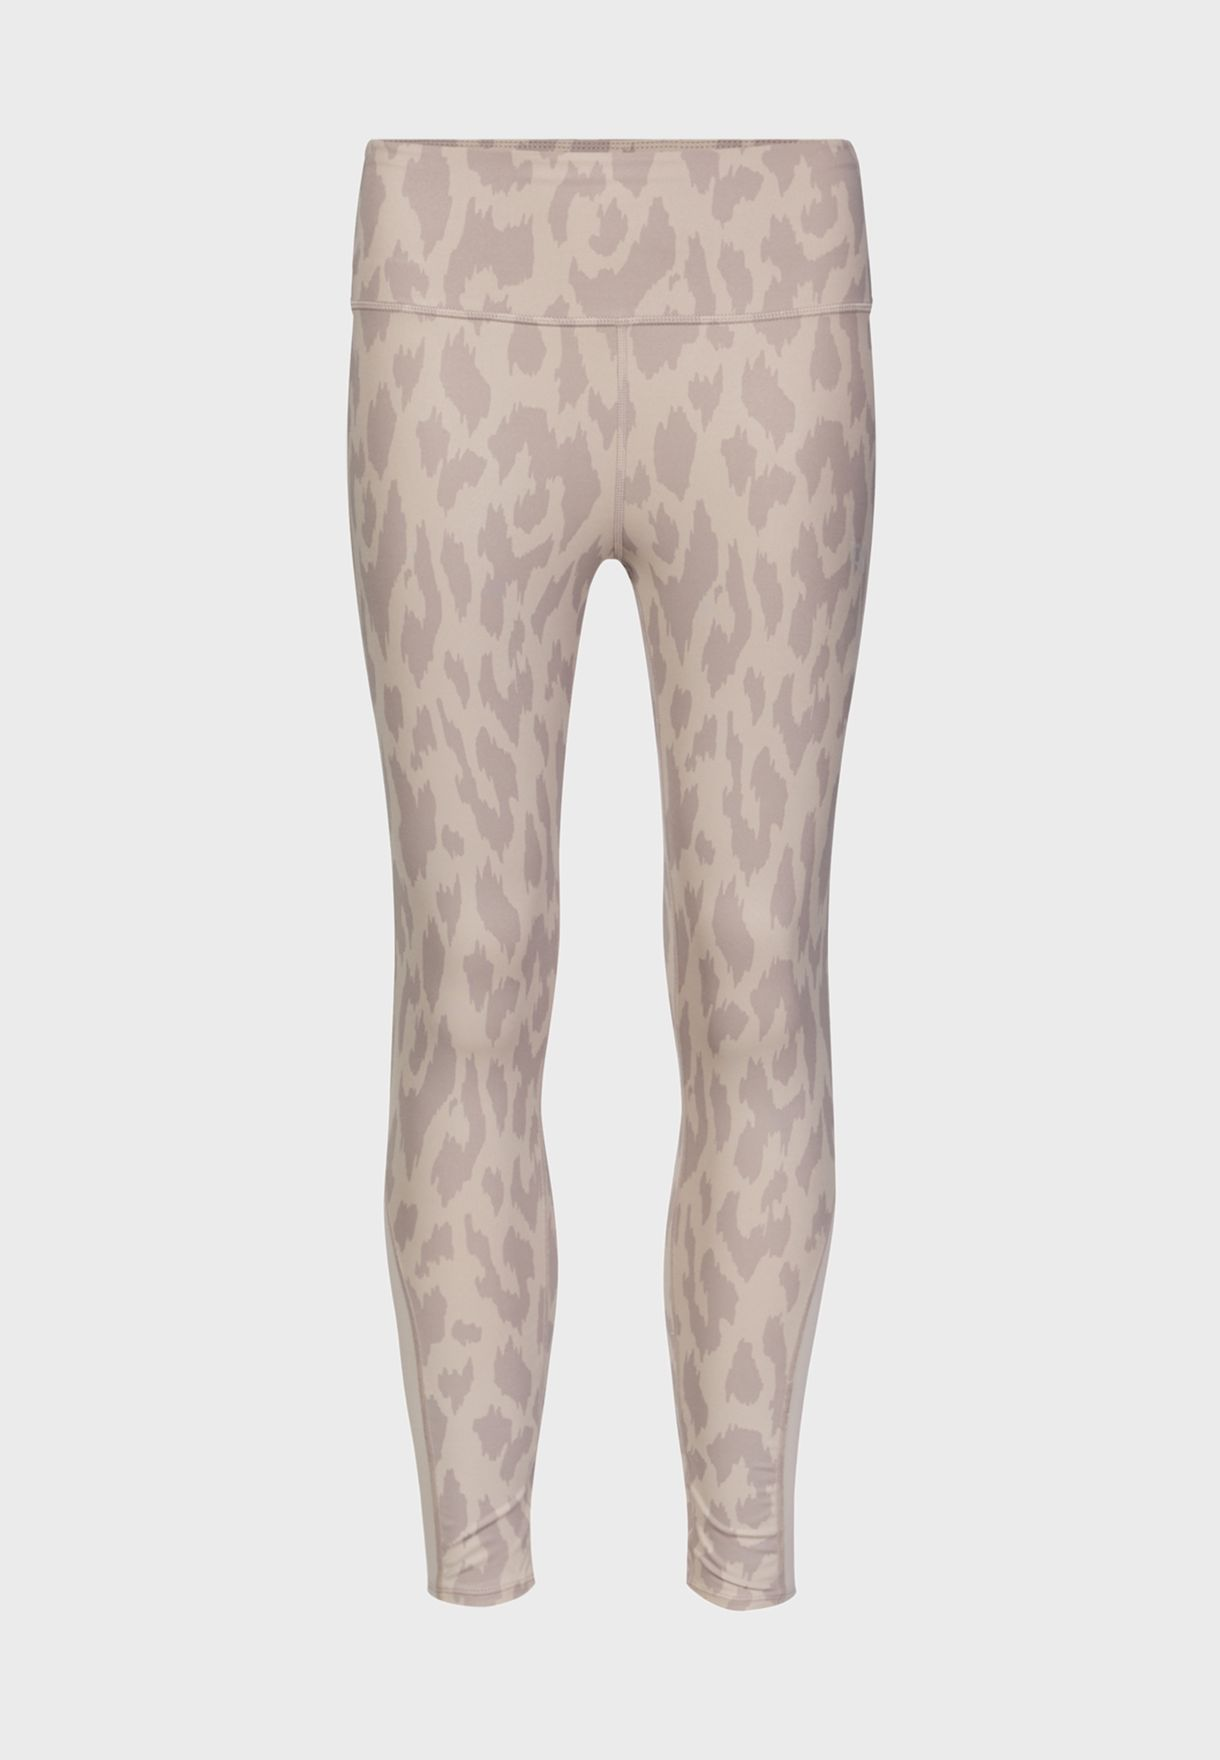 7/8 Graphic Tights